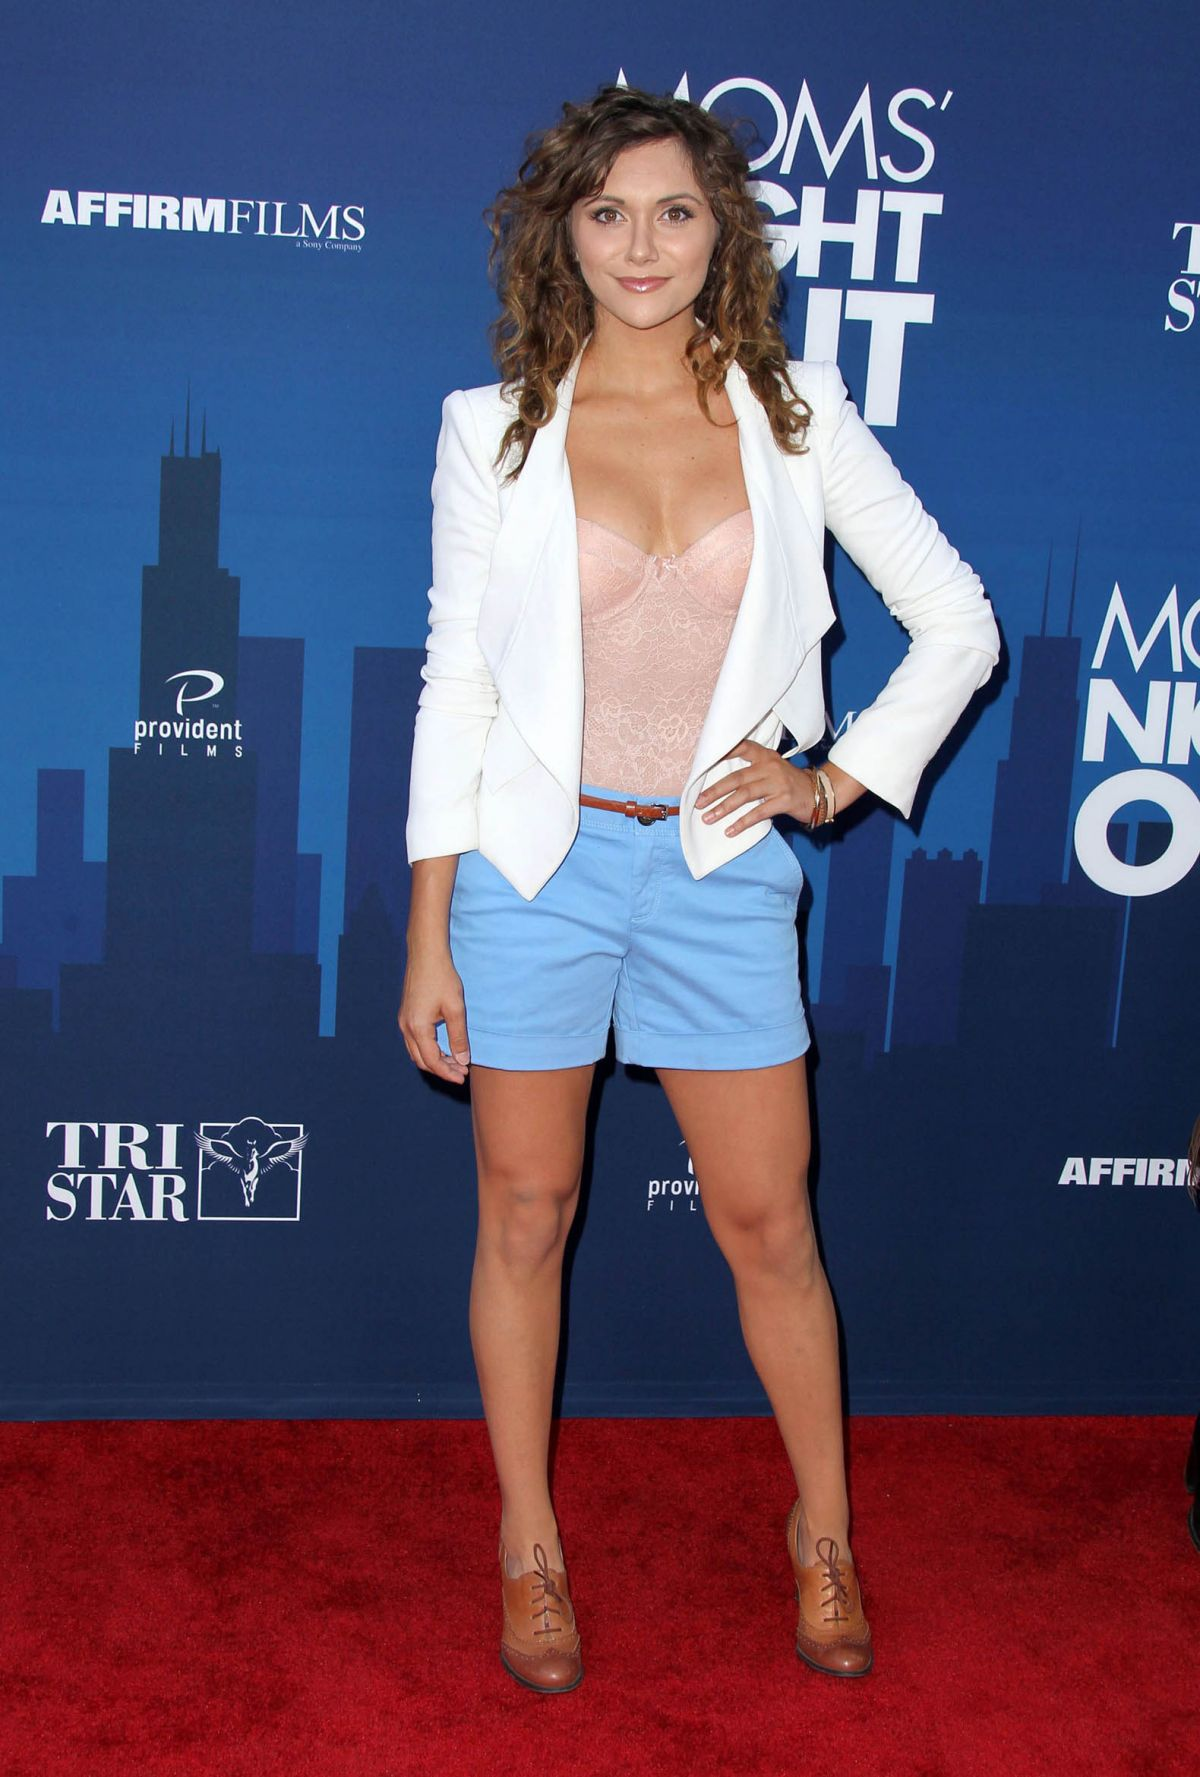 alyson stoner vkalyson stoner sweater weather, alyson stoner 2016, alyson stoner vk, alyson stoner eminem, alyson stoner 2017, alyson stoner missy elliott tribute, alyson stoner and demi lovato, alyson stoner -, alyson stoner facebook, alyson stoner dancing in the moonlight, alyson stoner gif, alyson stoner films, alyson stoner what i've been looking for, alyson stoner pretty girl lyrics, alyson stoner sam tsui, alyson stoner hanging tree, alyson stoner miles video, alyson stoner photoshoot, alyson stoner plastic, alyson stoner project